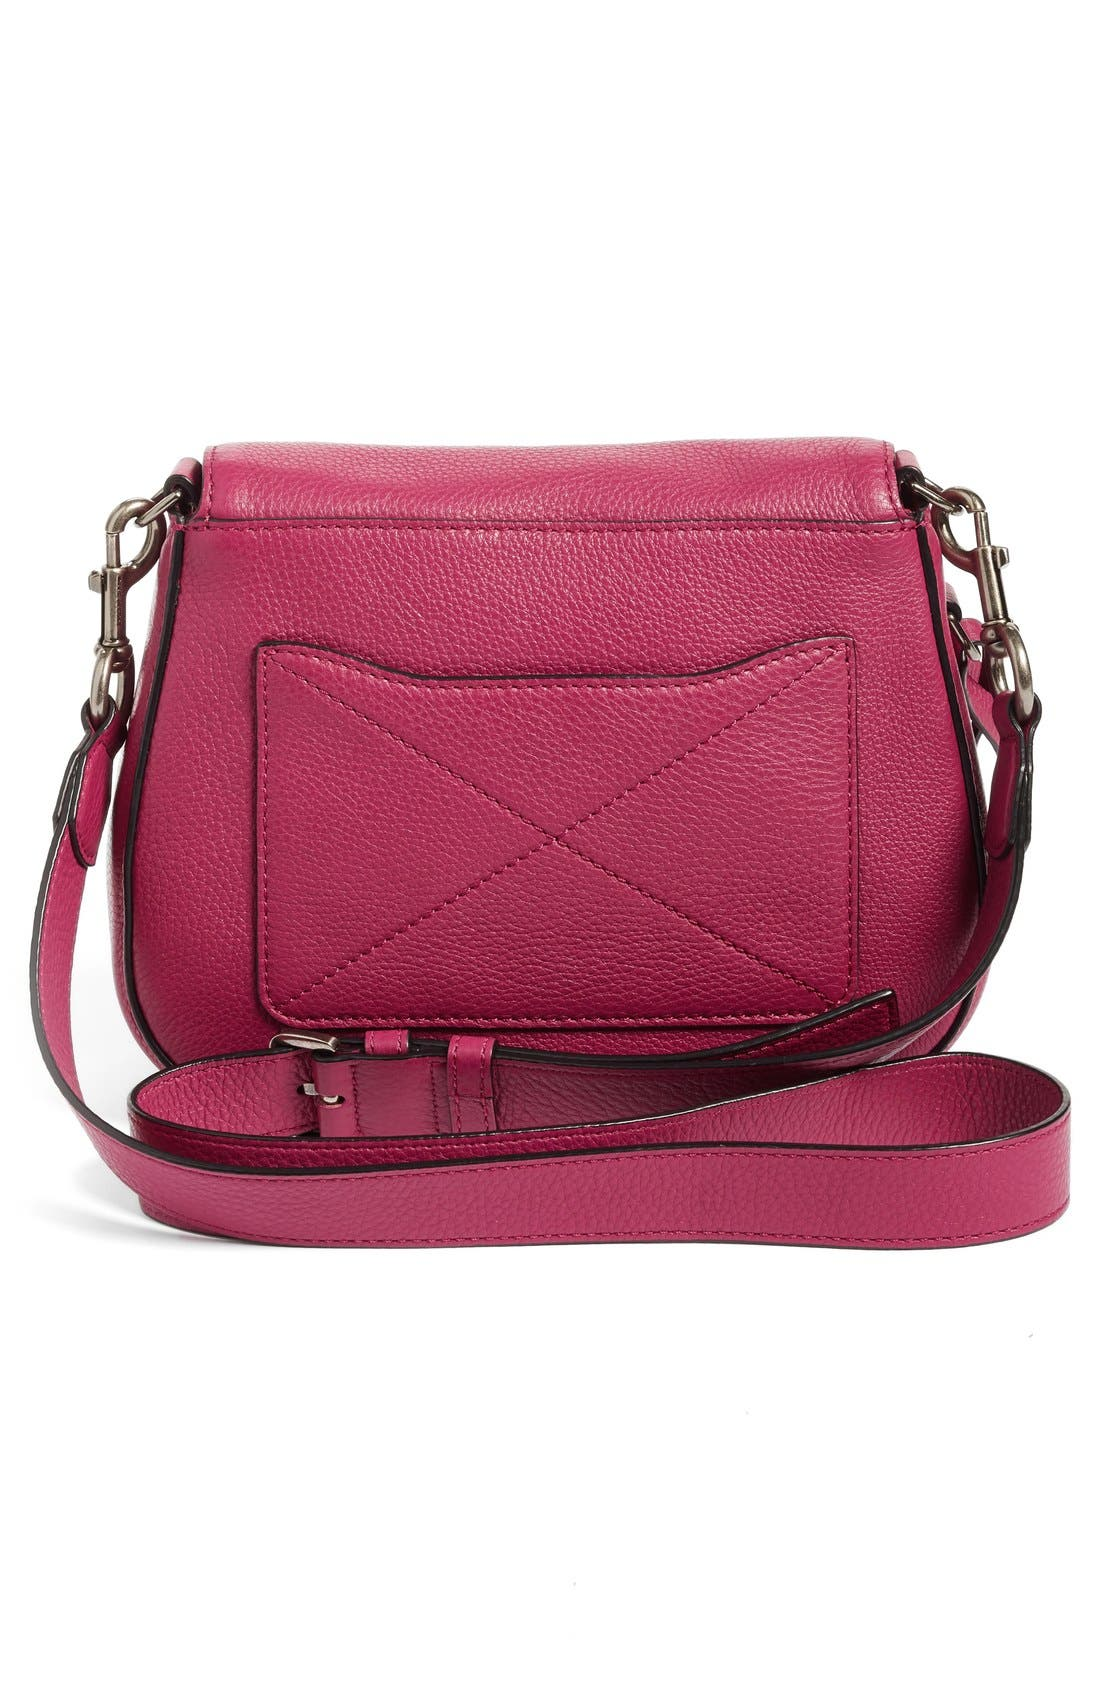 Small Recruit Nomad Pebbled Leather Crossbody Bag,                             Alternate thumbnail 94, color,